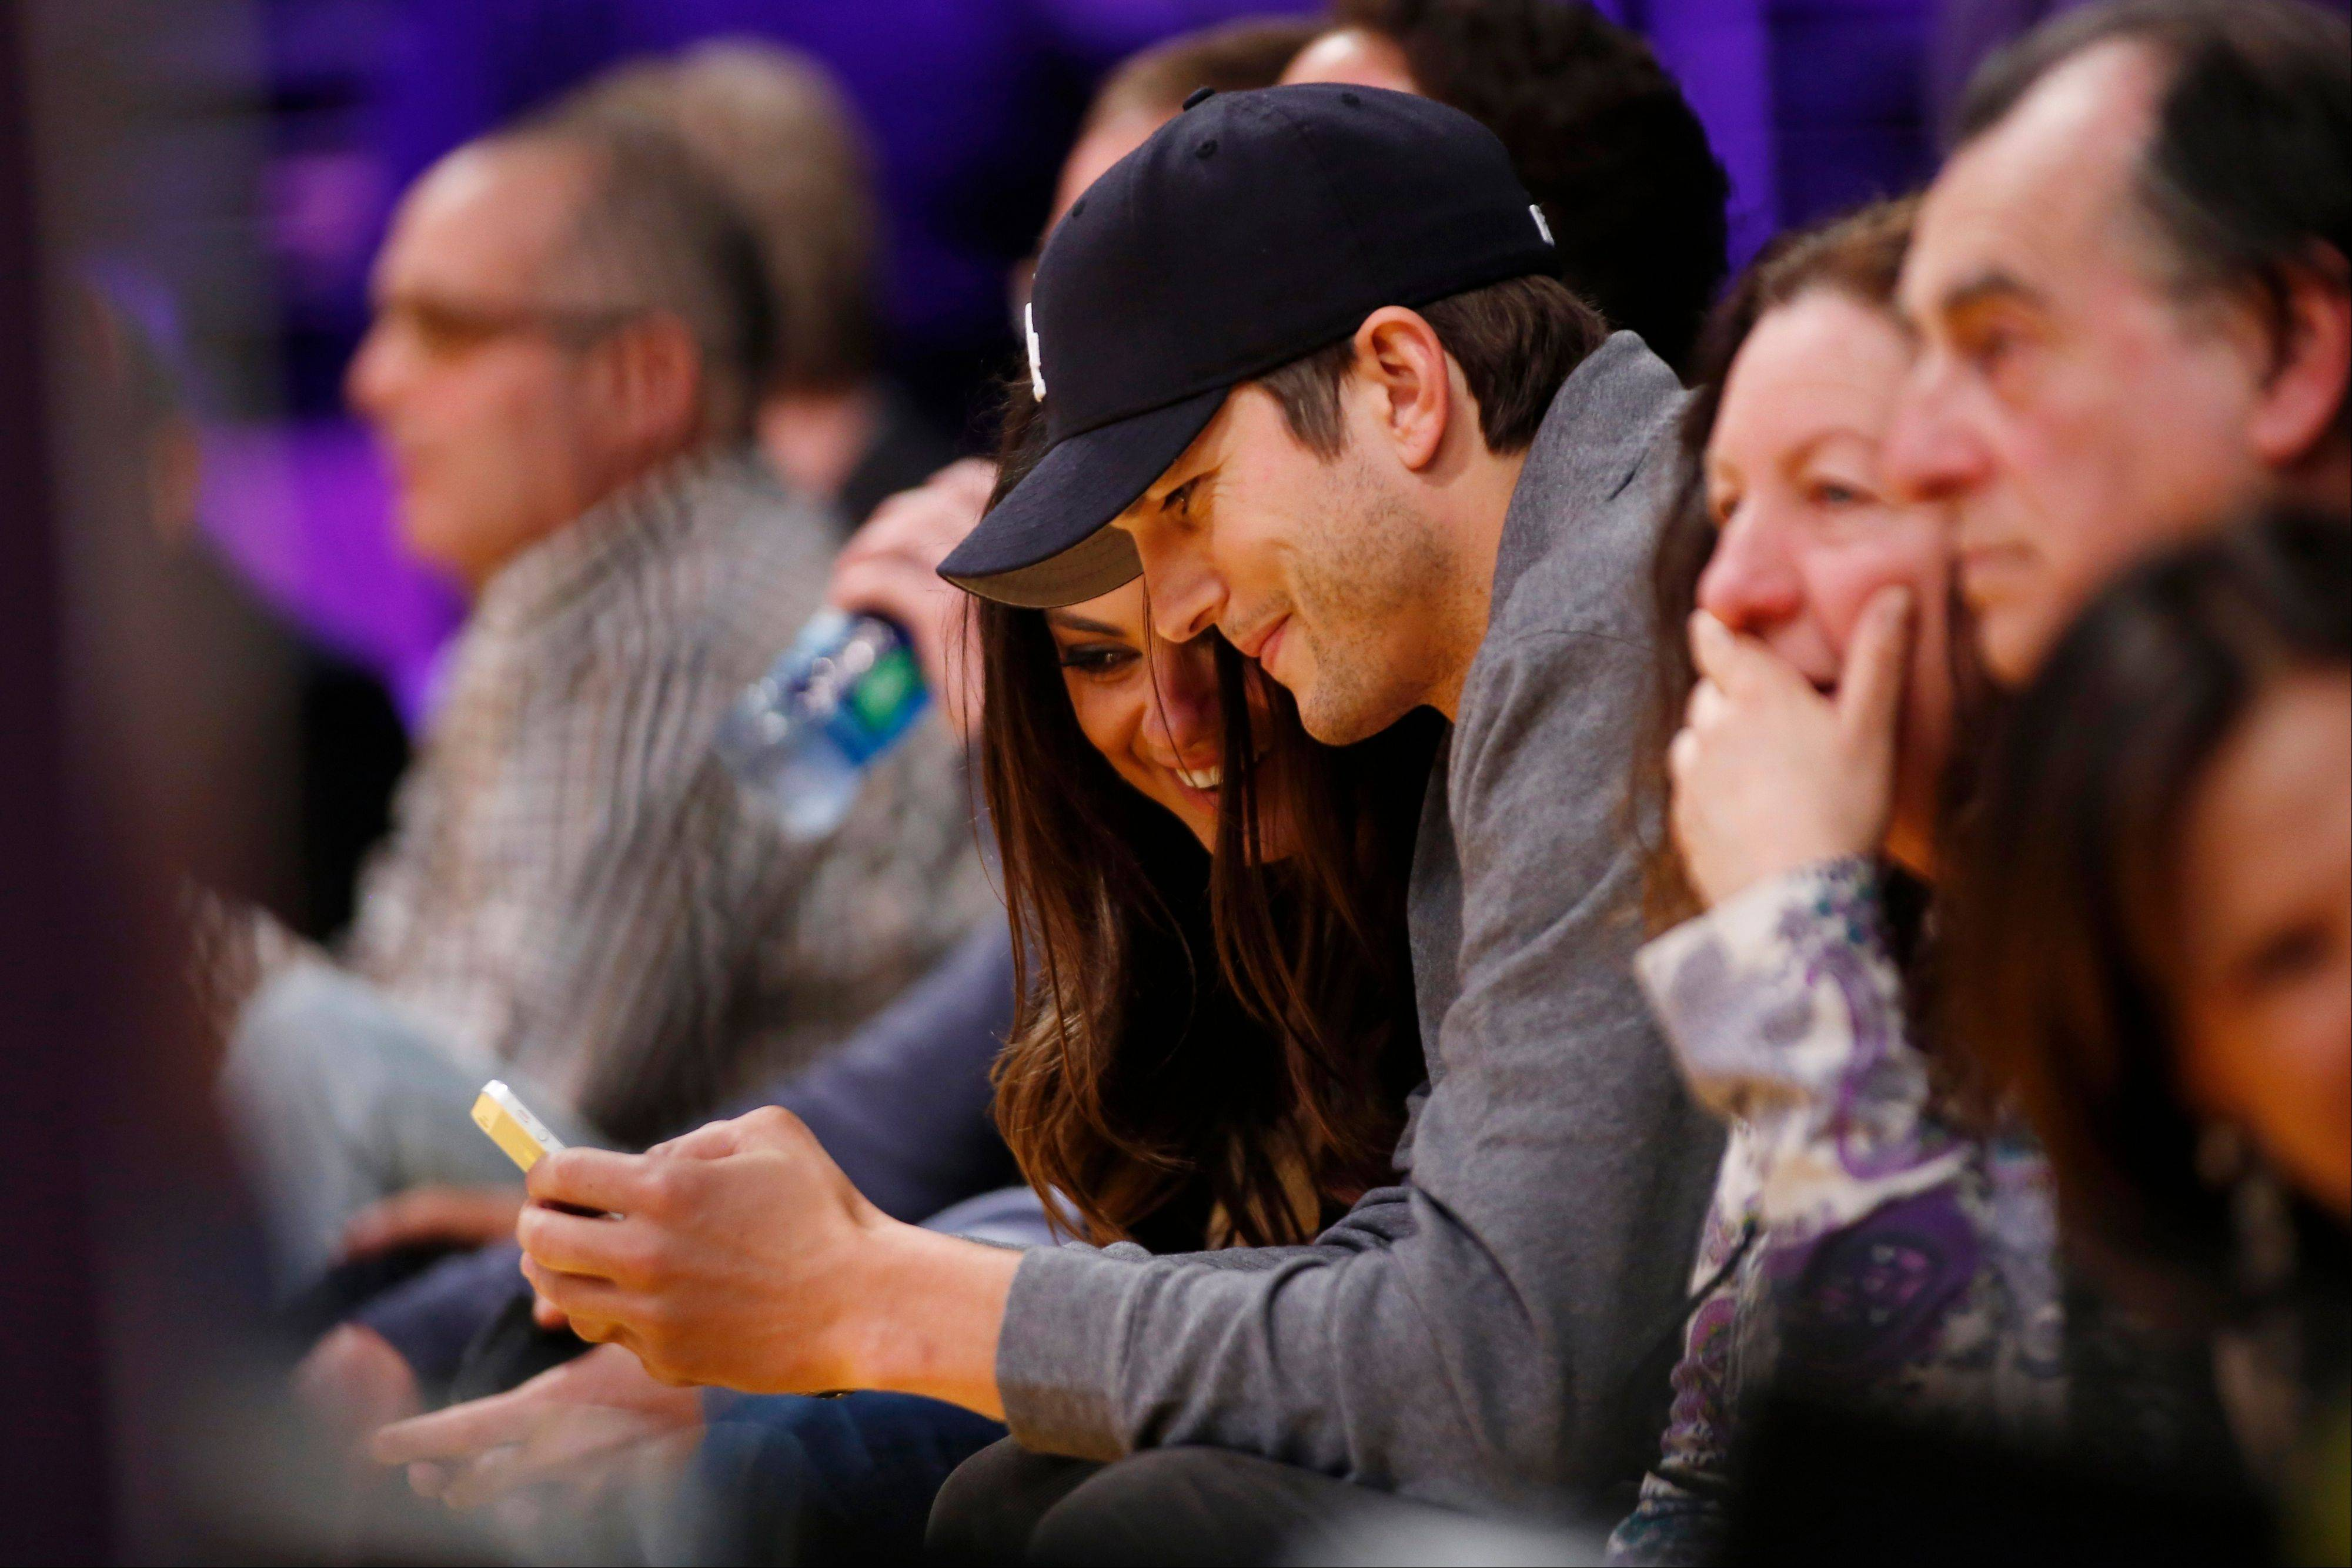 Actors Mila Kunis, left, and Ashton Kutcher look at a mobile phone as they sit courtside together at the NBA basketball game between the Phoenix Suns and Los Angeles Lakers, in Los Angeles. Kutcher is included on a long list of celebrities who -- at one time or another -- have taken a break from Twitter. Twitter burnout among celebrities, athletes and shameless self-promoters poses a risk to the company and its investors.